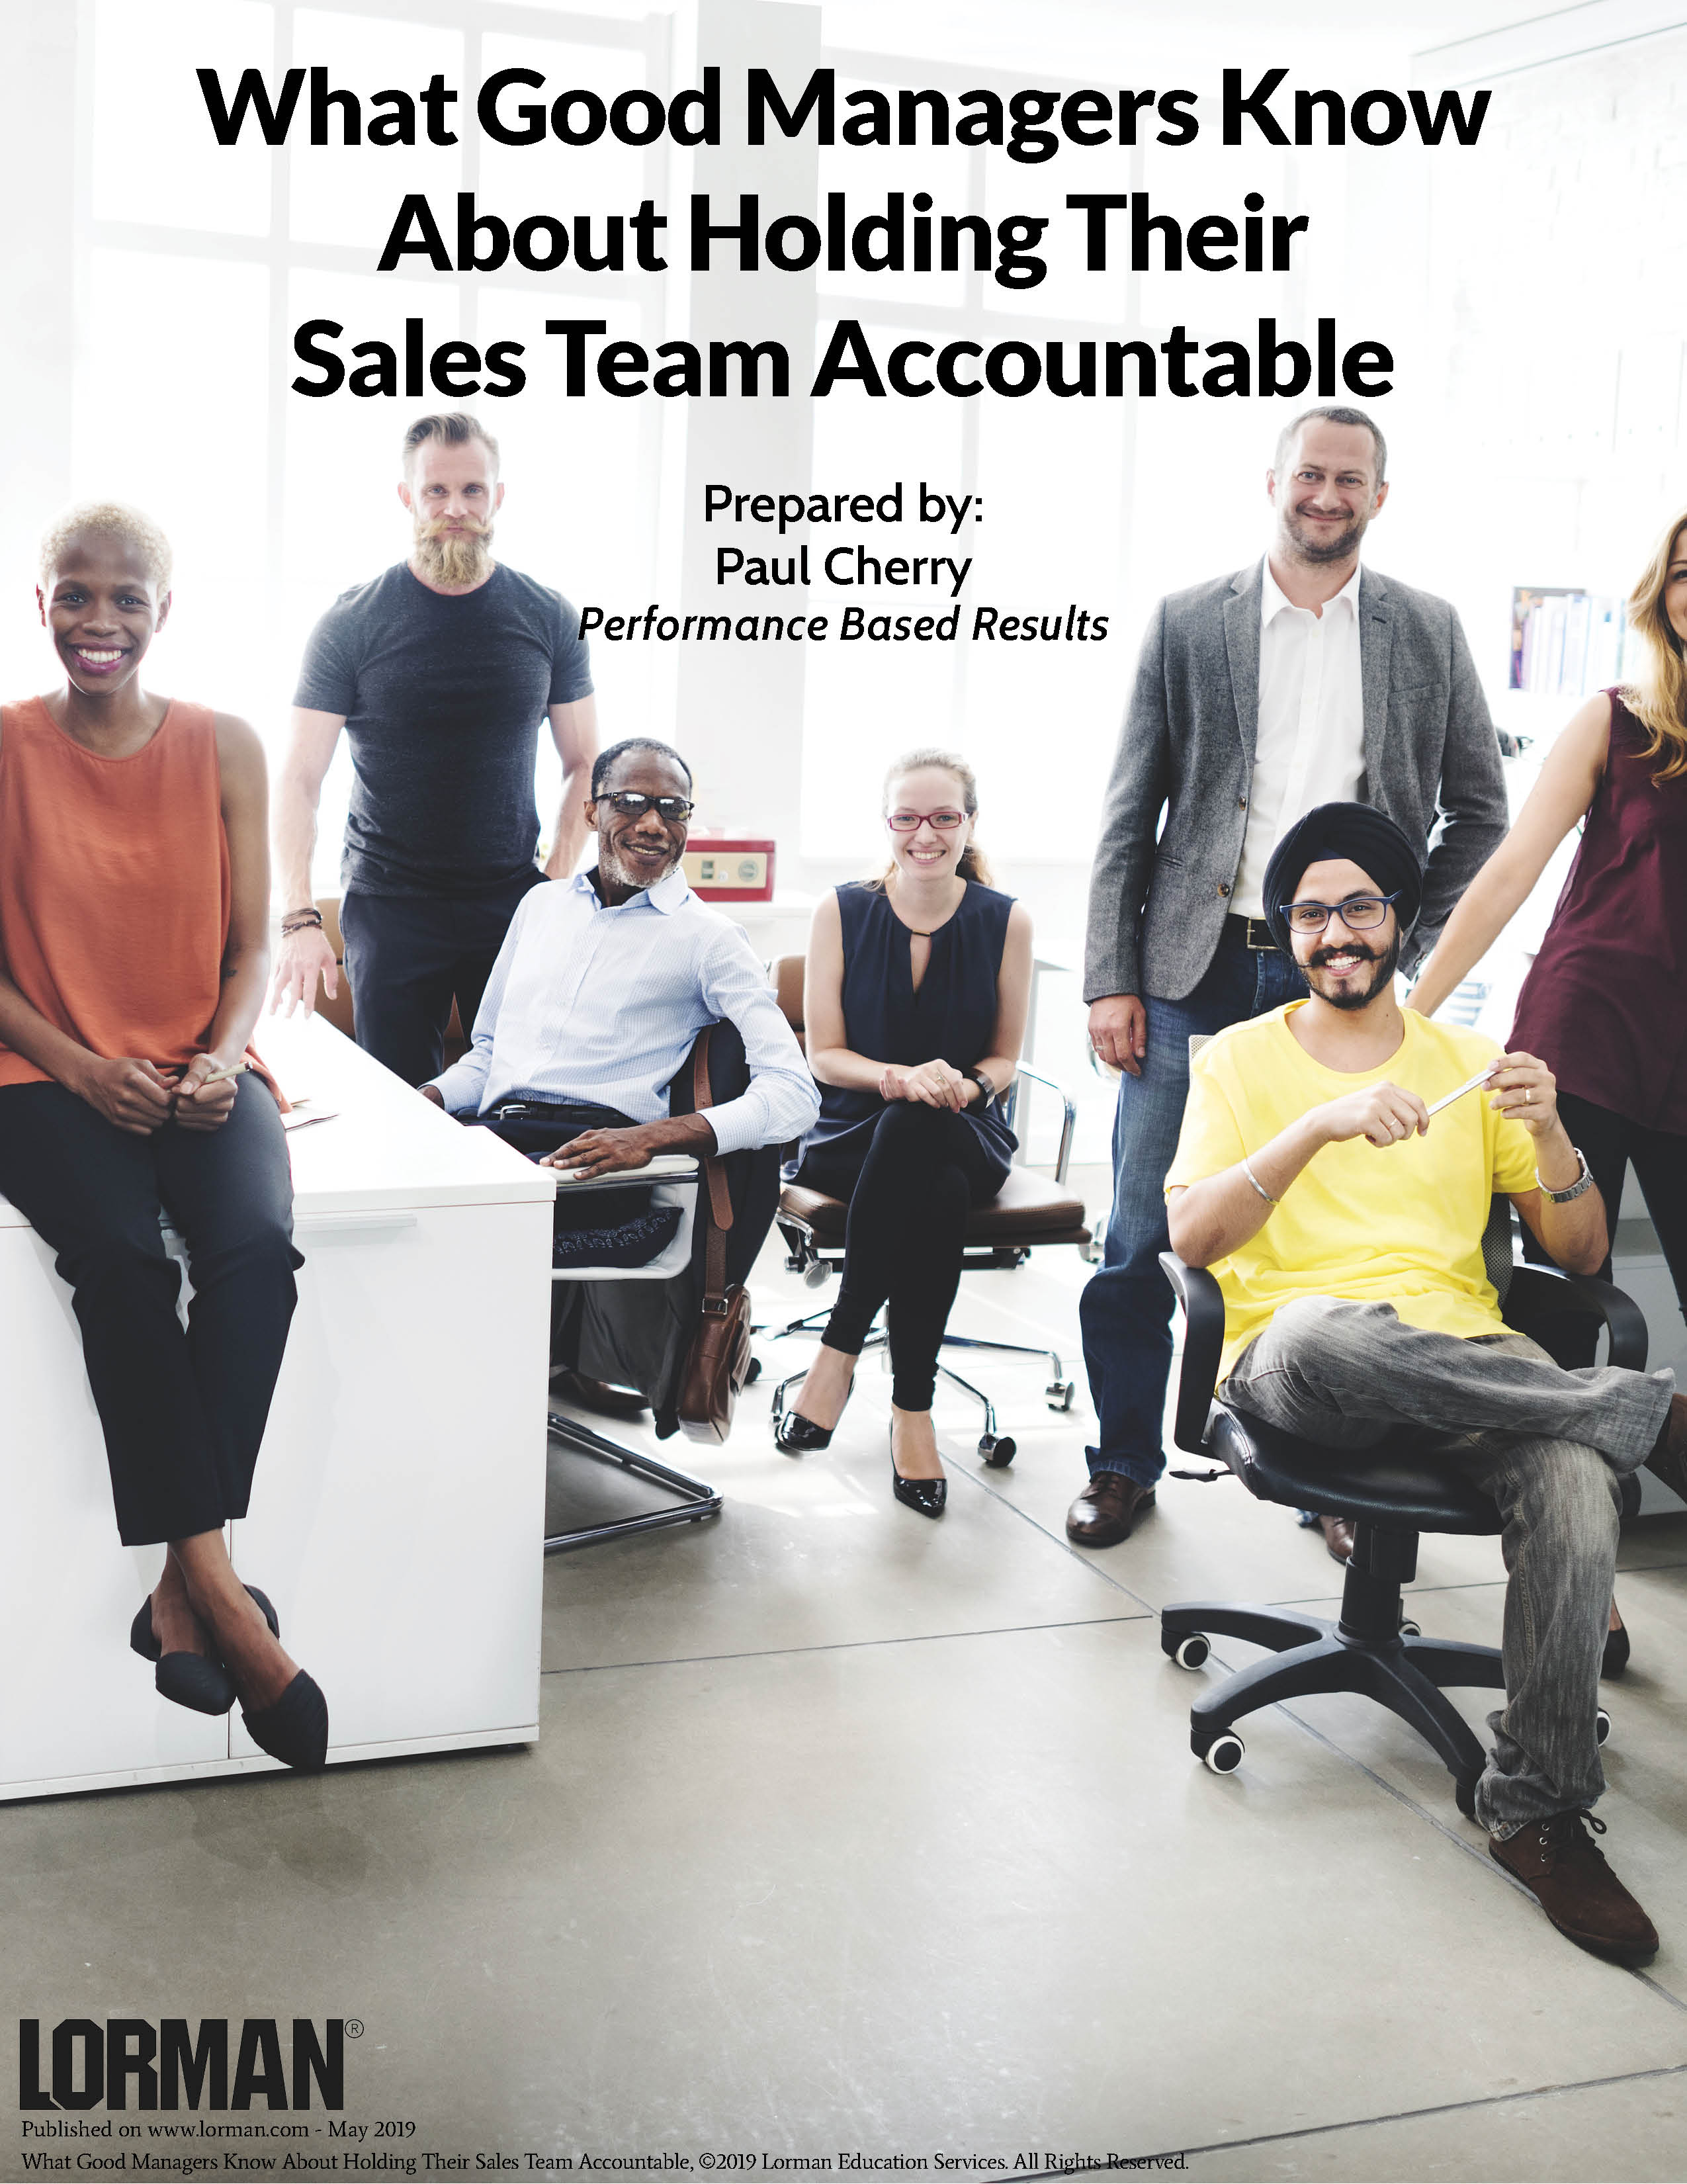 What Good Managers Know About Holding Their Sales Team Accountable